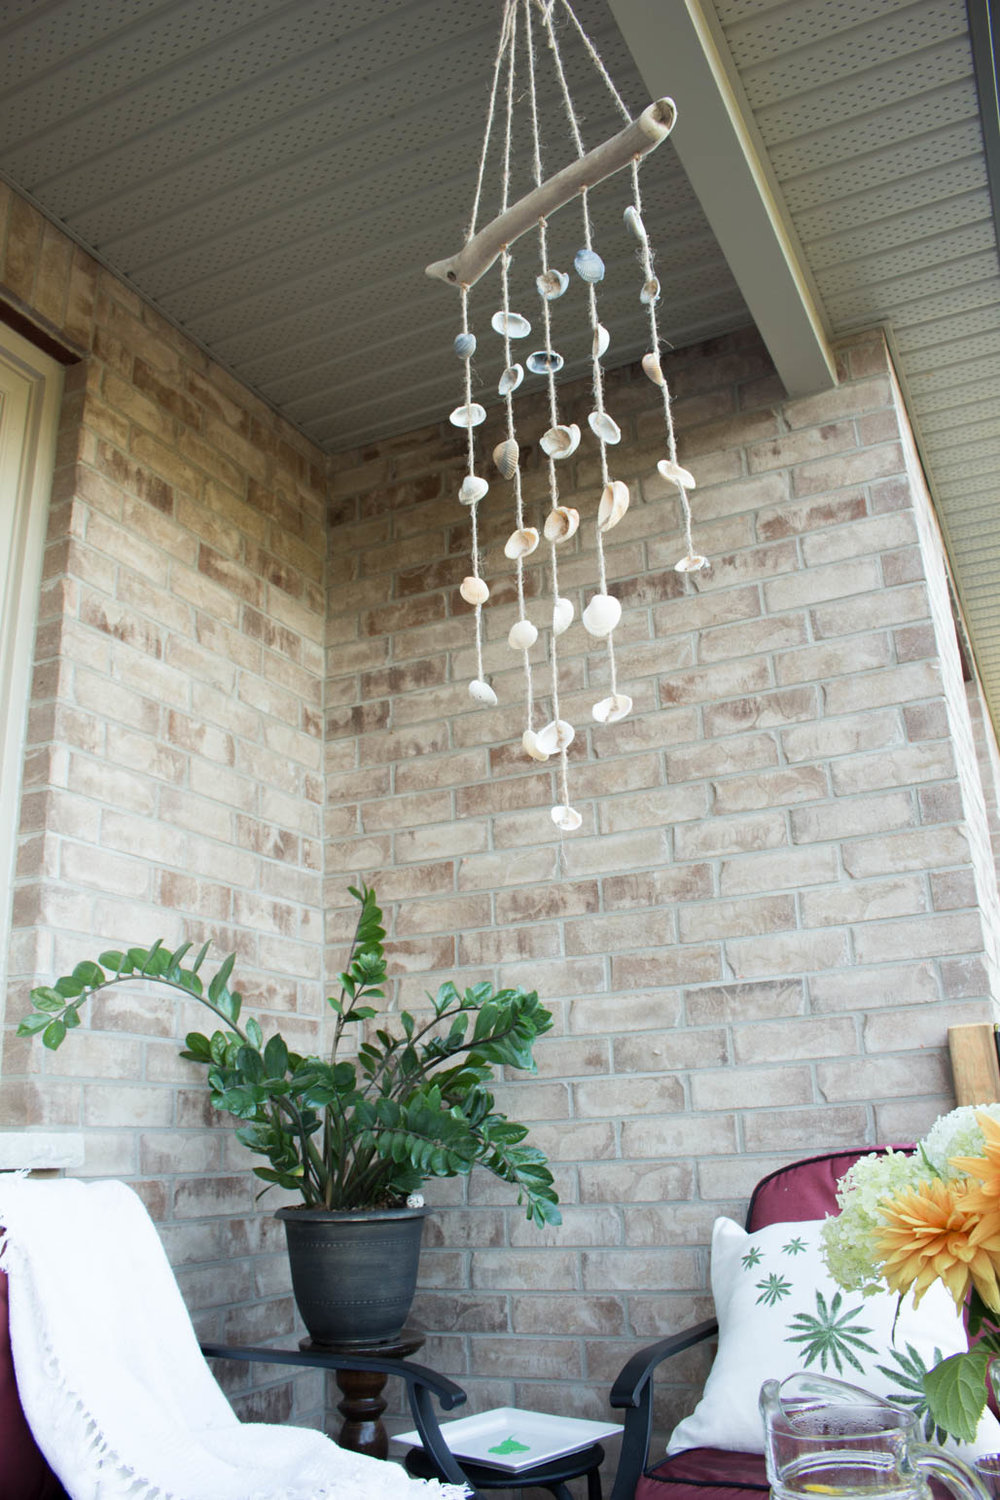 This seashell wind chime is so easy to make and can be used indoors as acoastal cottage décor idea for your patio or bring it indoors as wall art. A quick DIY video tutorial is included to make this nautical project!